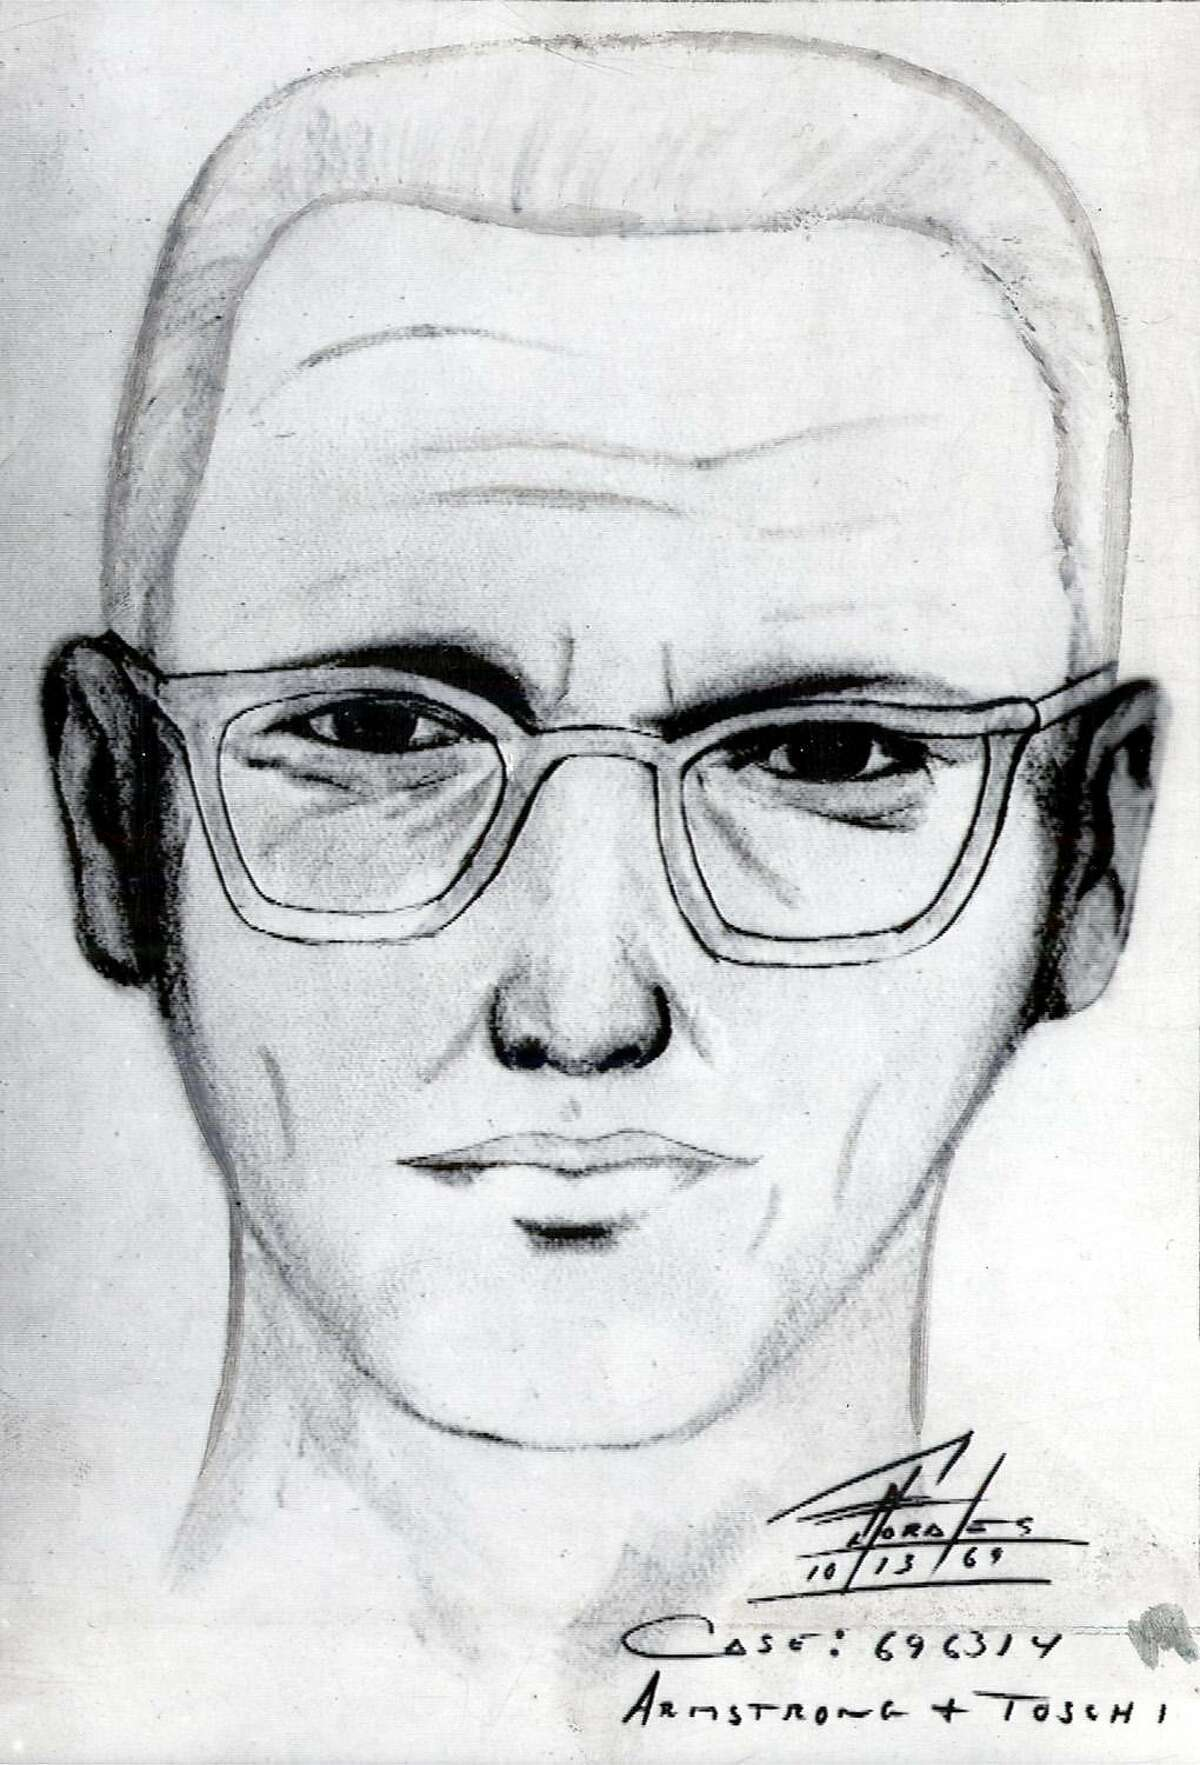 """Police sketch of the man suspected of being the """"Zodiac Killer"""" in 1969."""